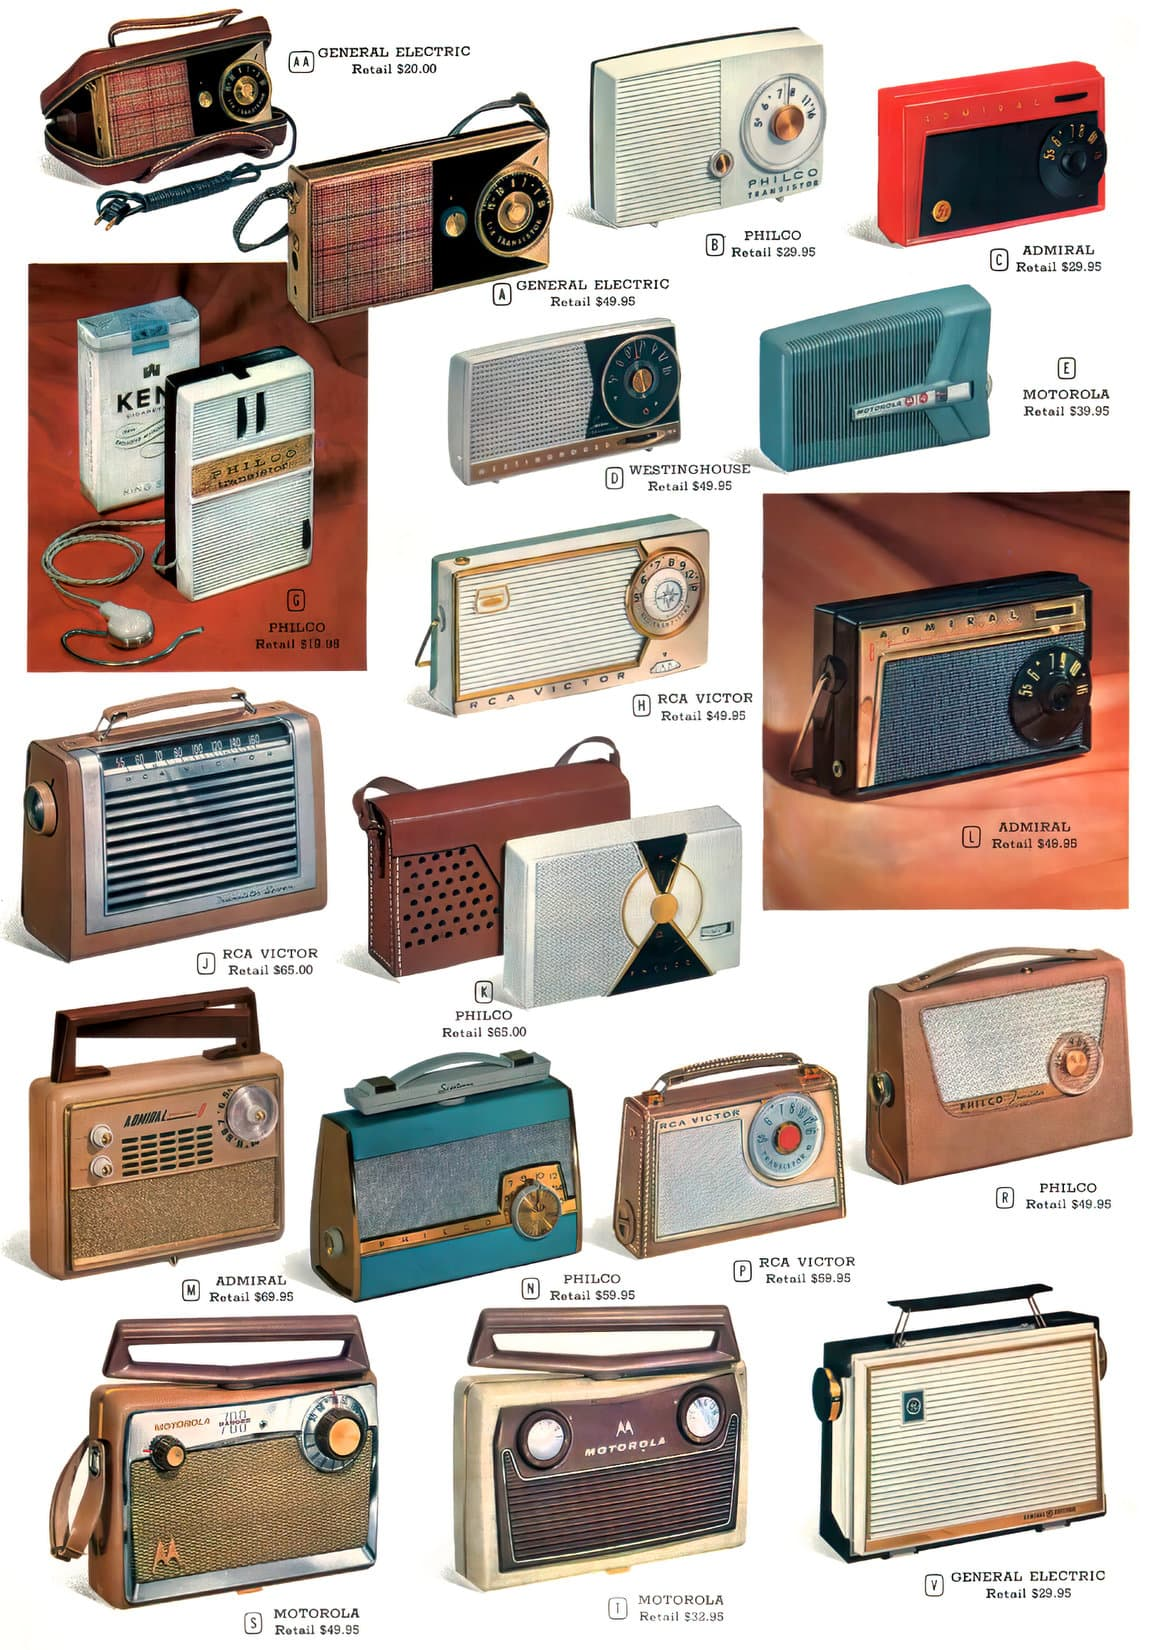 Vintage portable radios from the 1950s